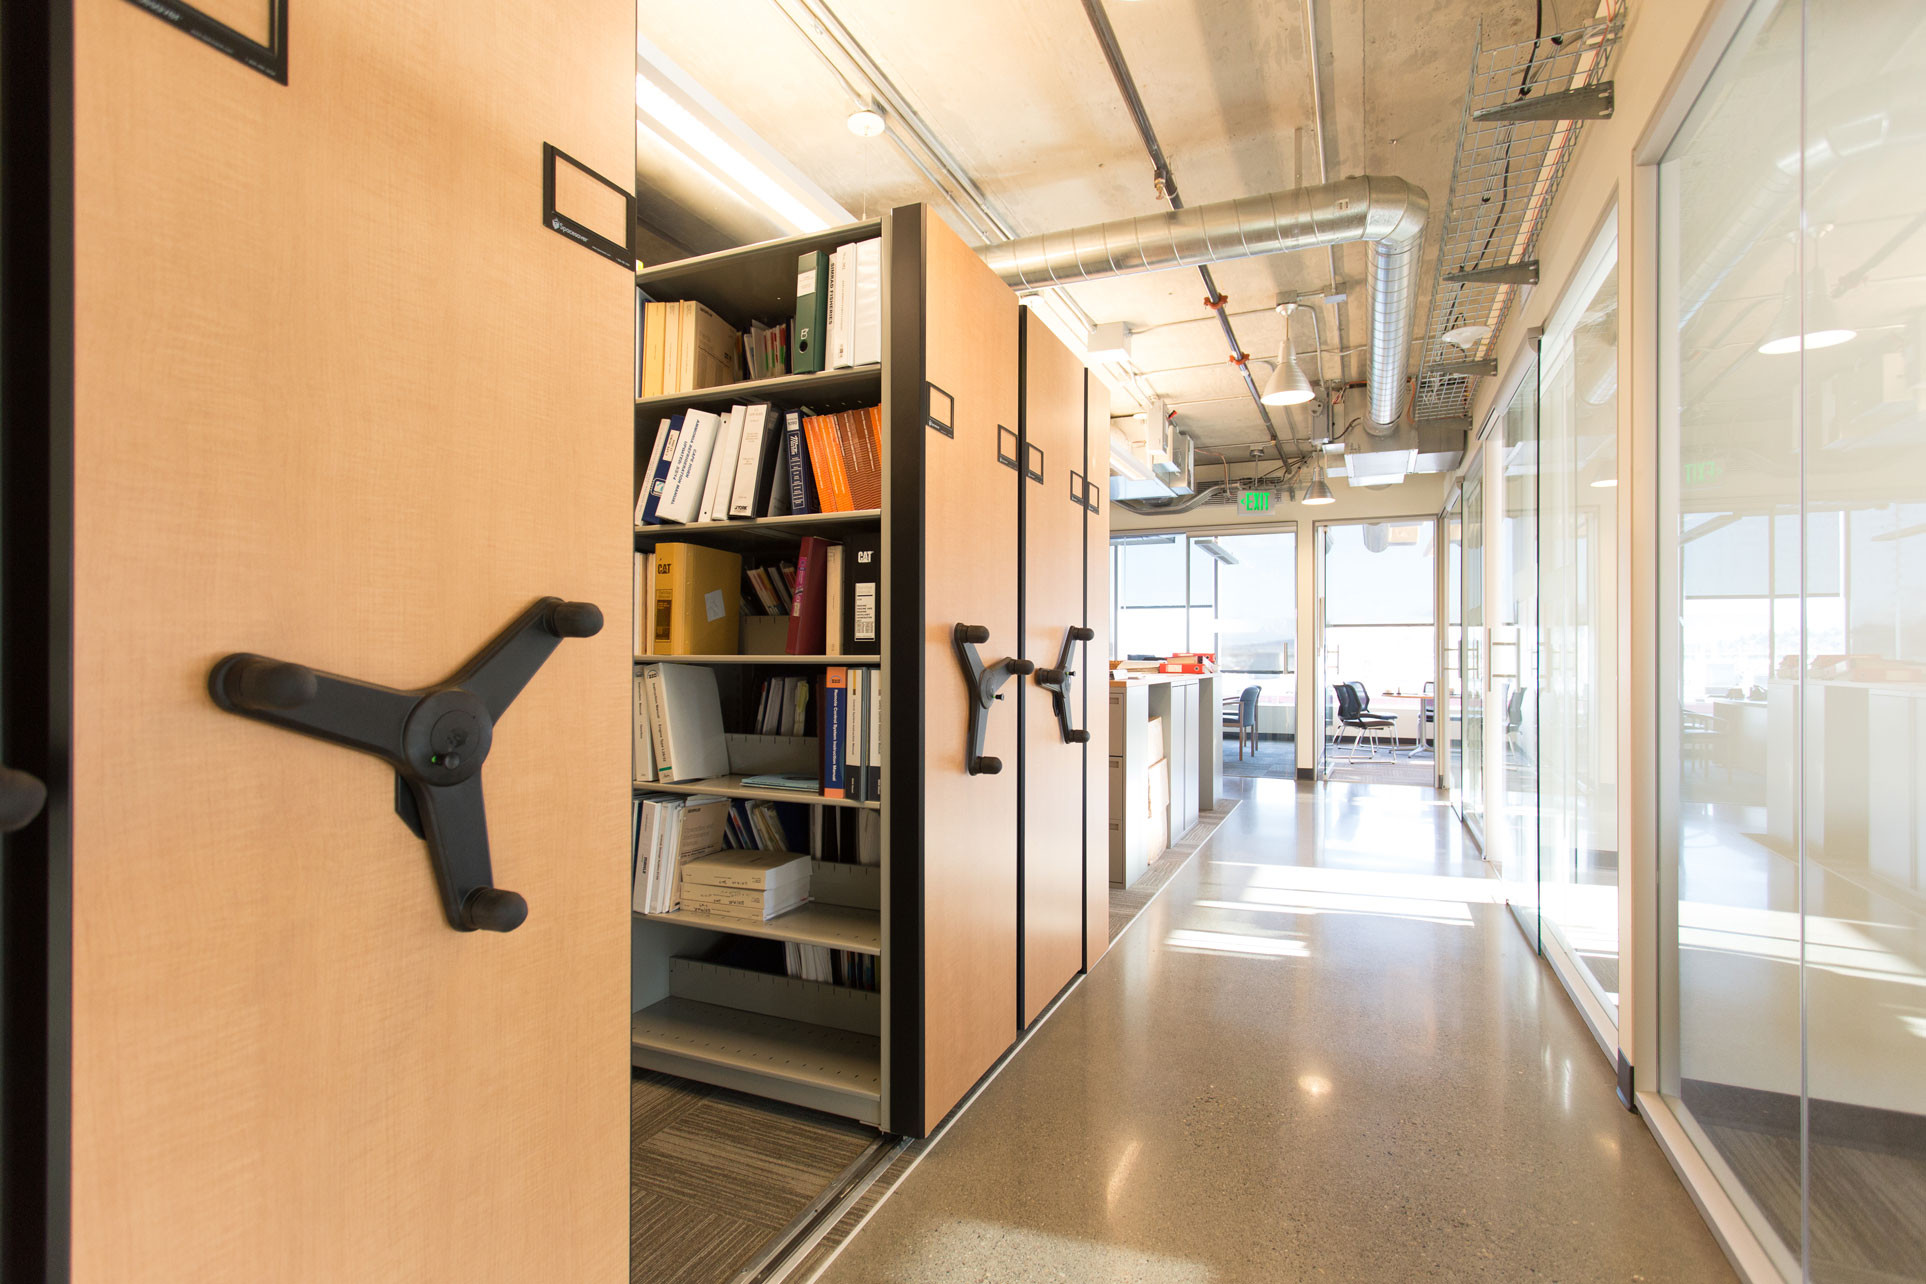 High Density Mobile shelving system in office space